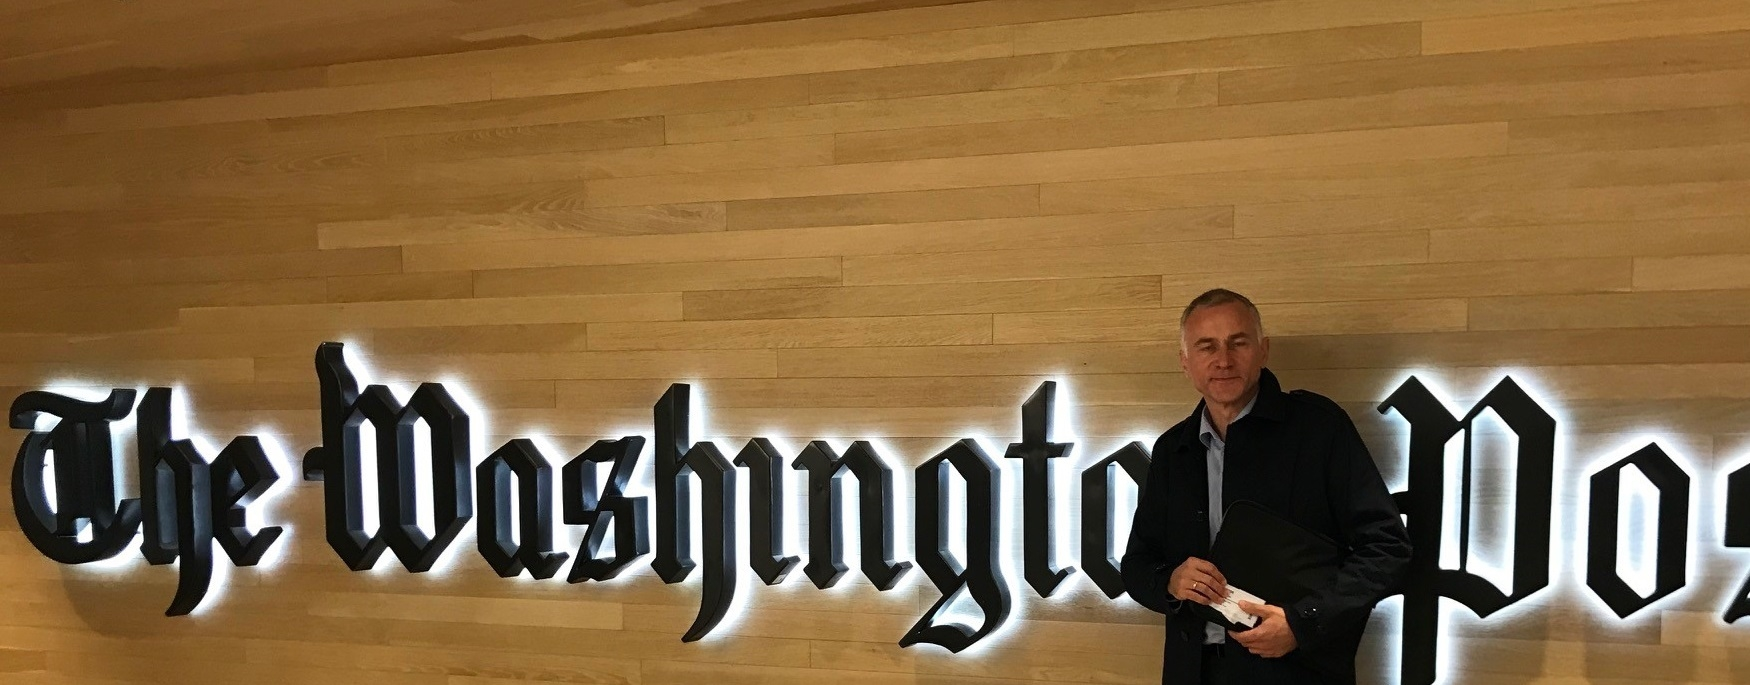 Tom Staavi i Washington Post. Foto.